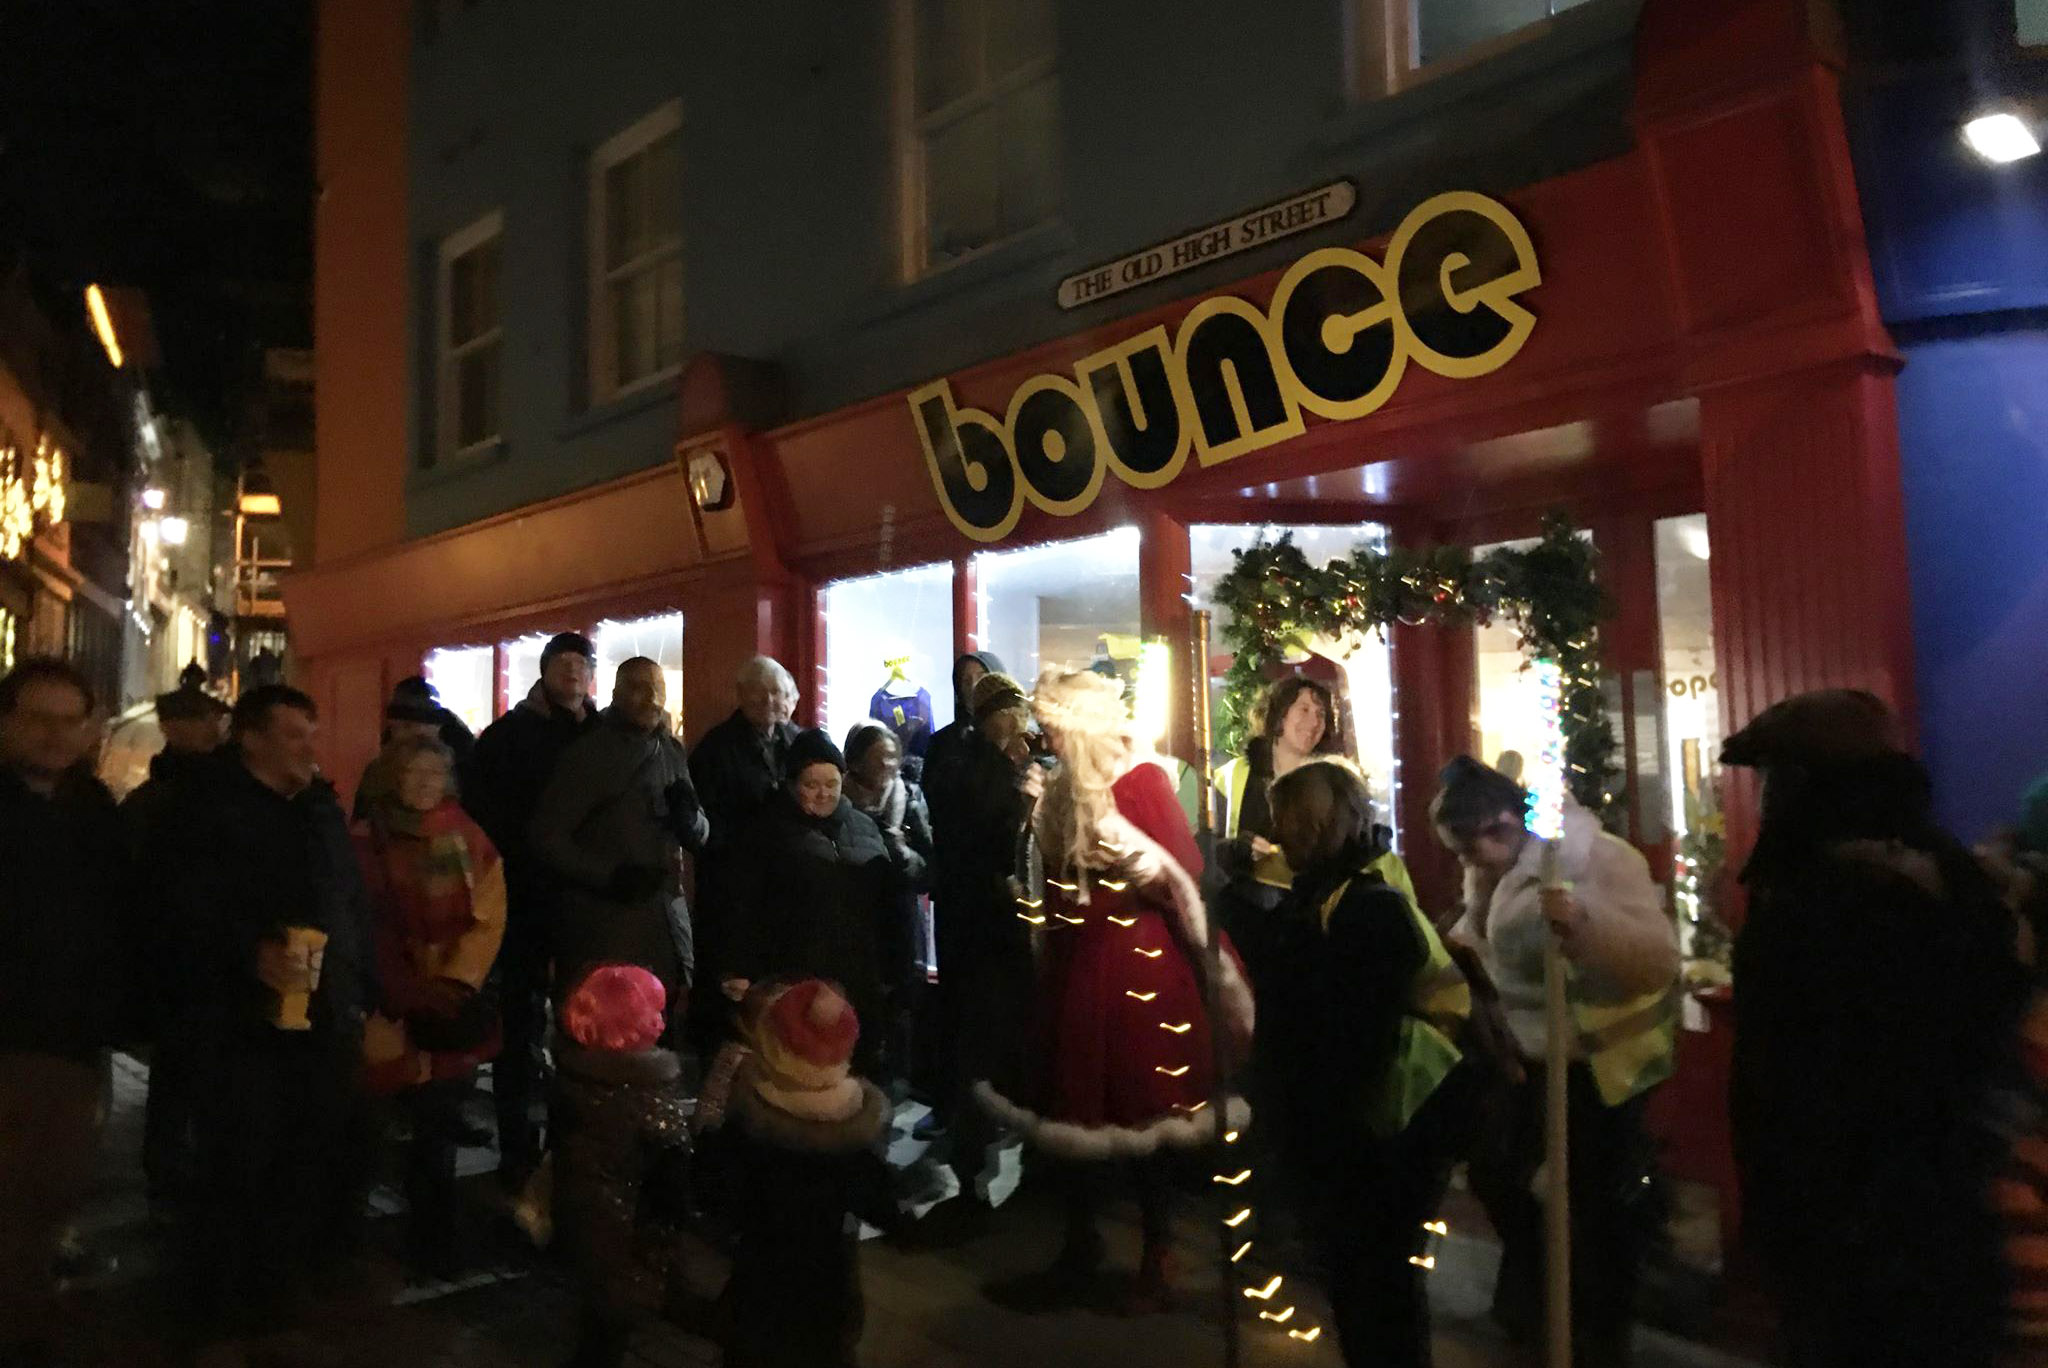 13th December, Confidance at Bounce, Folkestone